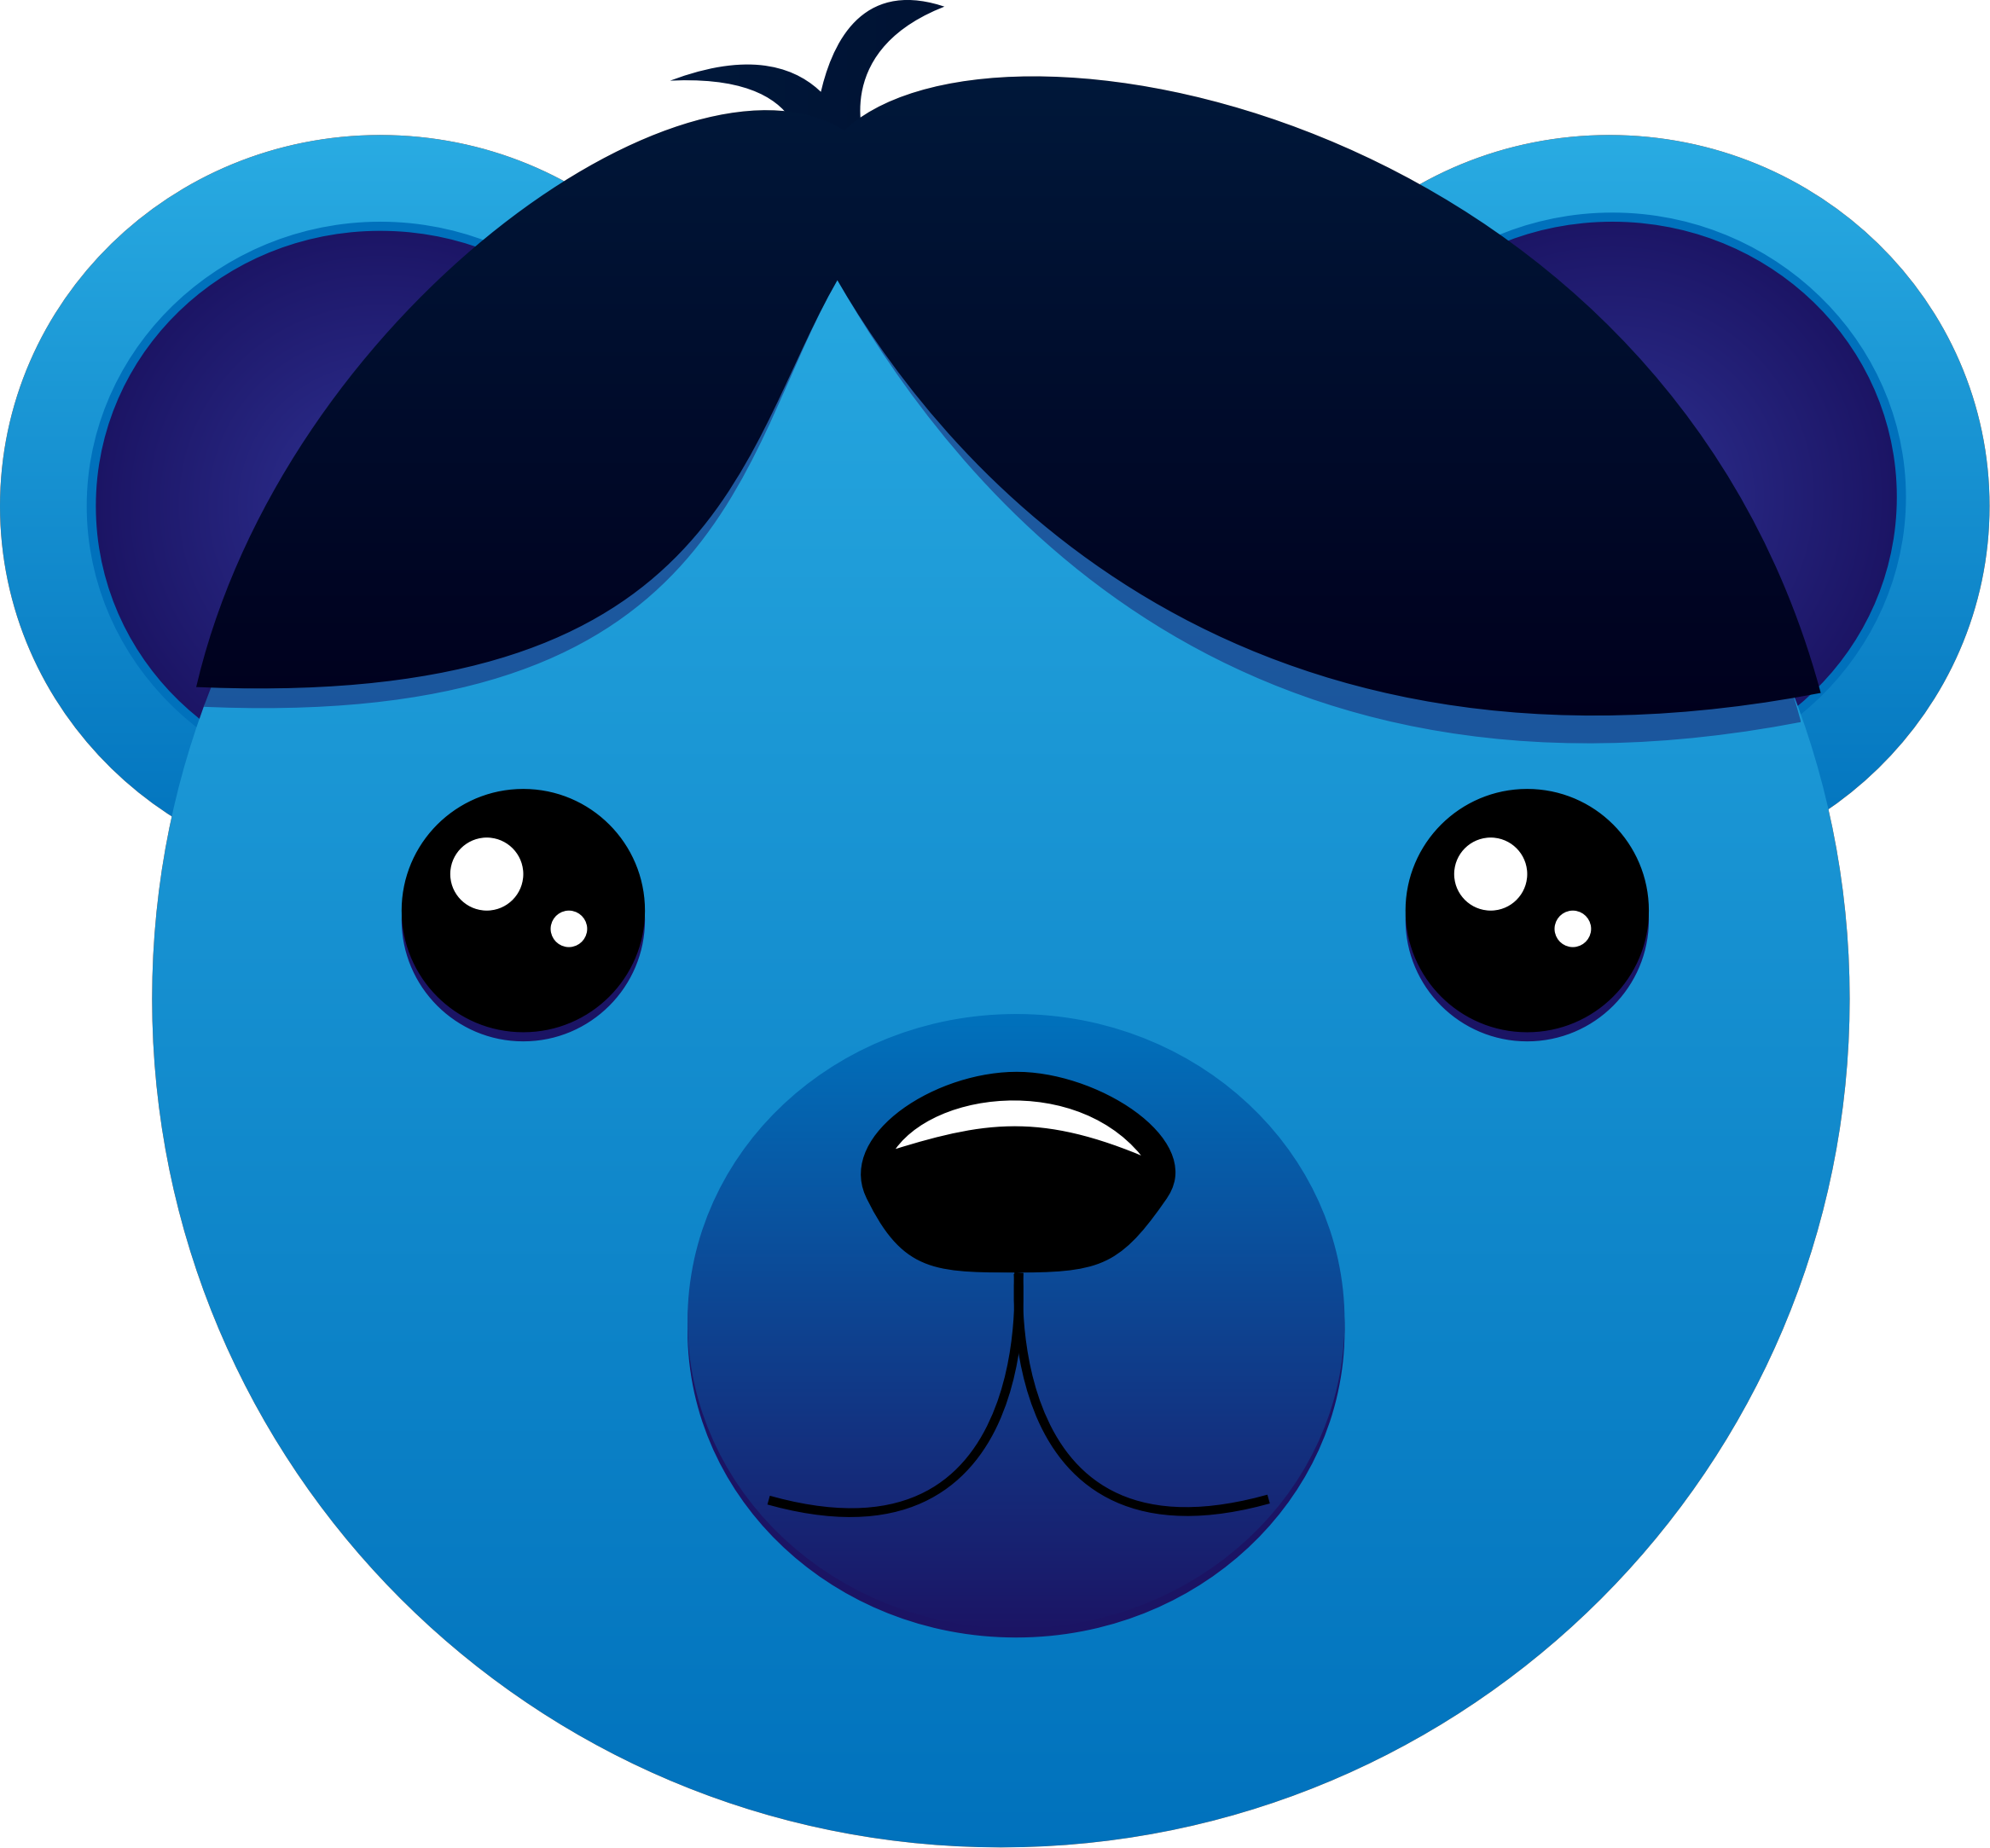 Blue Bear with parted hair by intergrapher